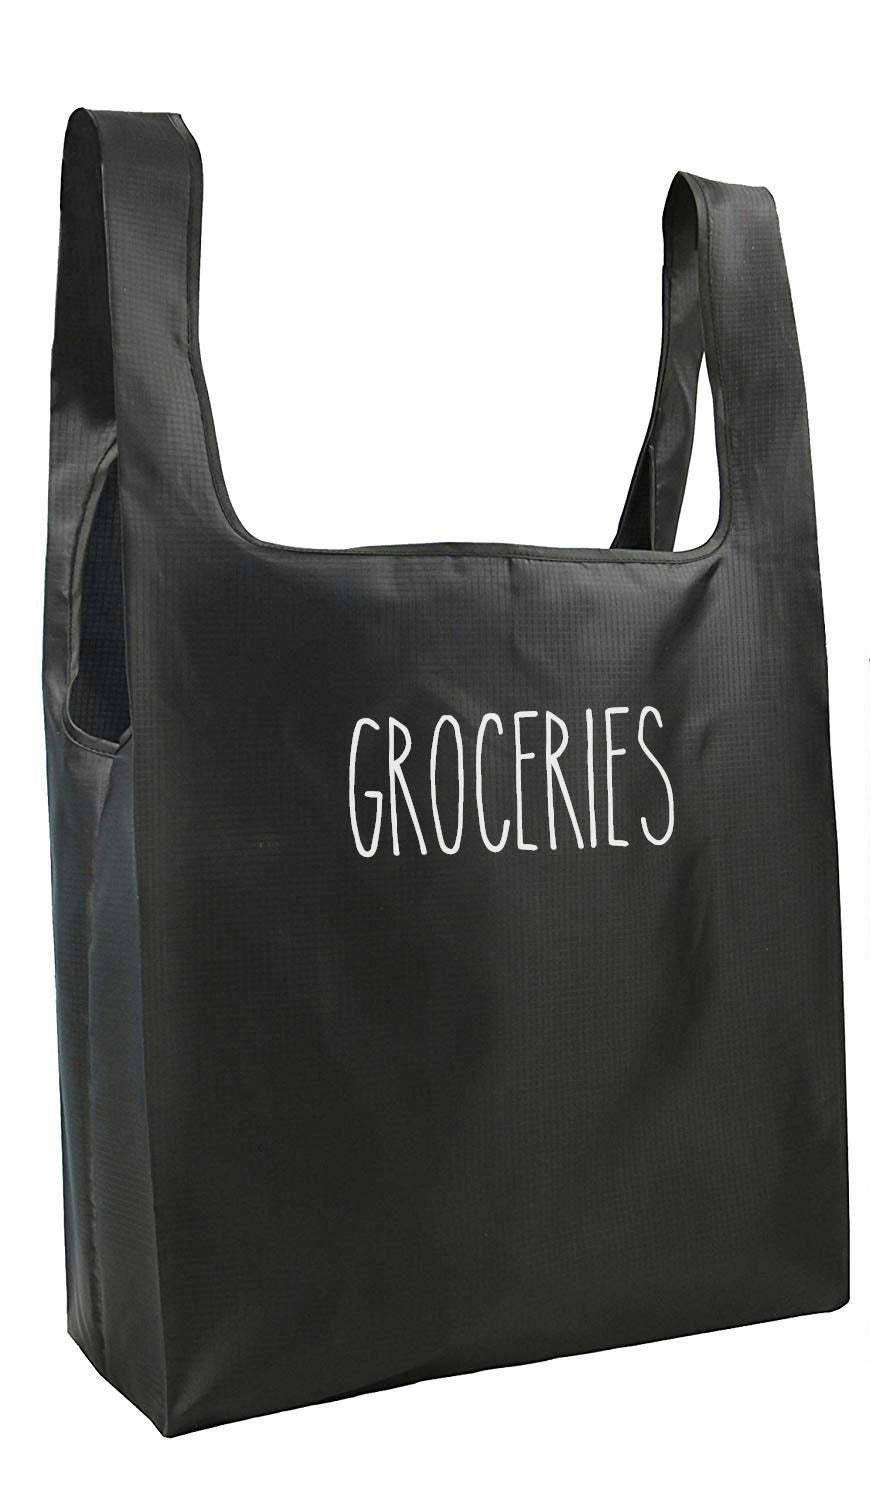 Reusable-Grocery Bag,Foldable Shopping Bag,Washable Shopping Bag, Personalized Bag,Personalized Tote,Bridal Party Gift, Monogrammed Tote Bag